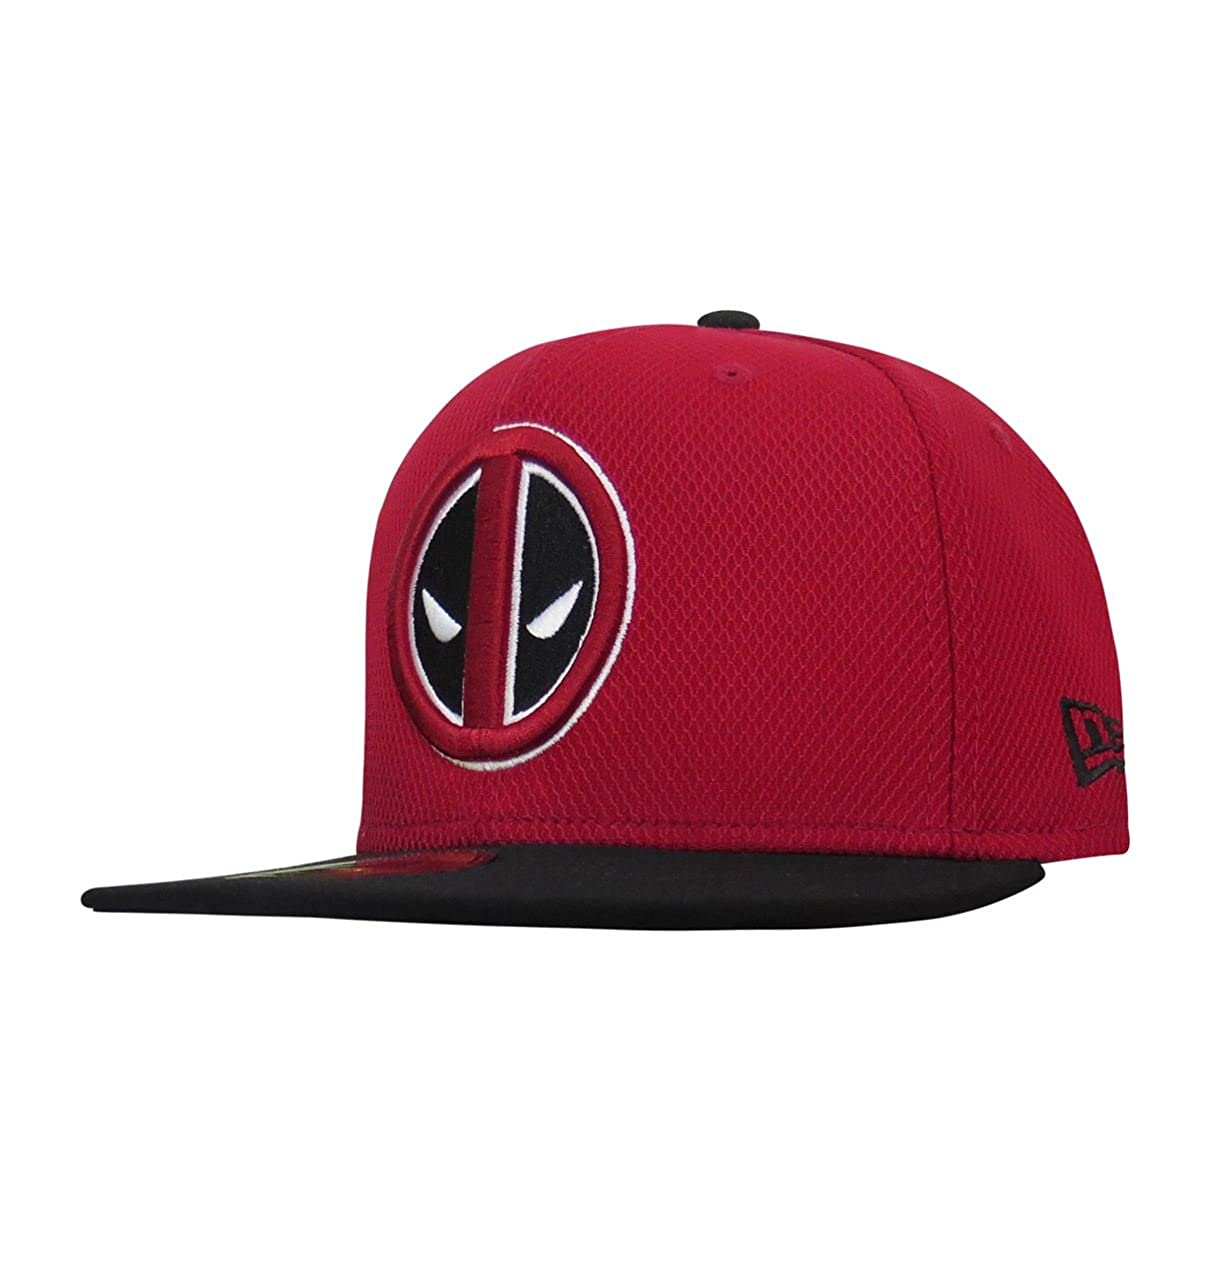 d879b84137 New era deadpool symbol red black fifty fitted hat at amazon mens clothing  store jpg 1214x1280